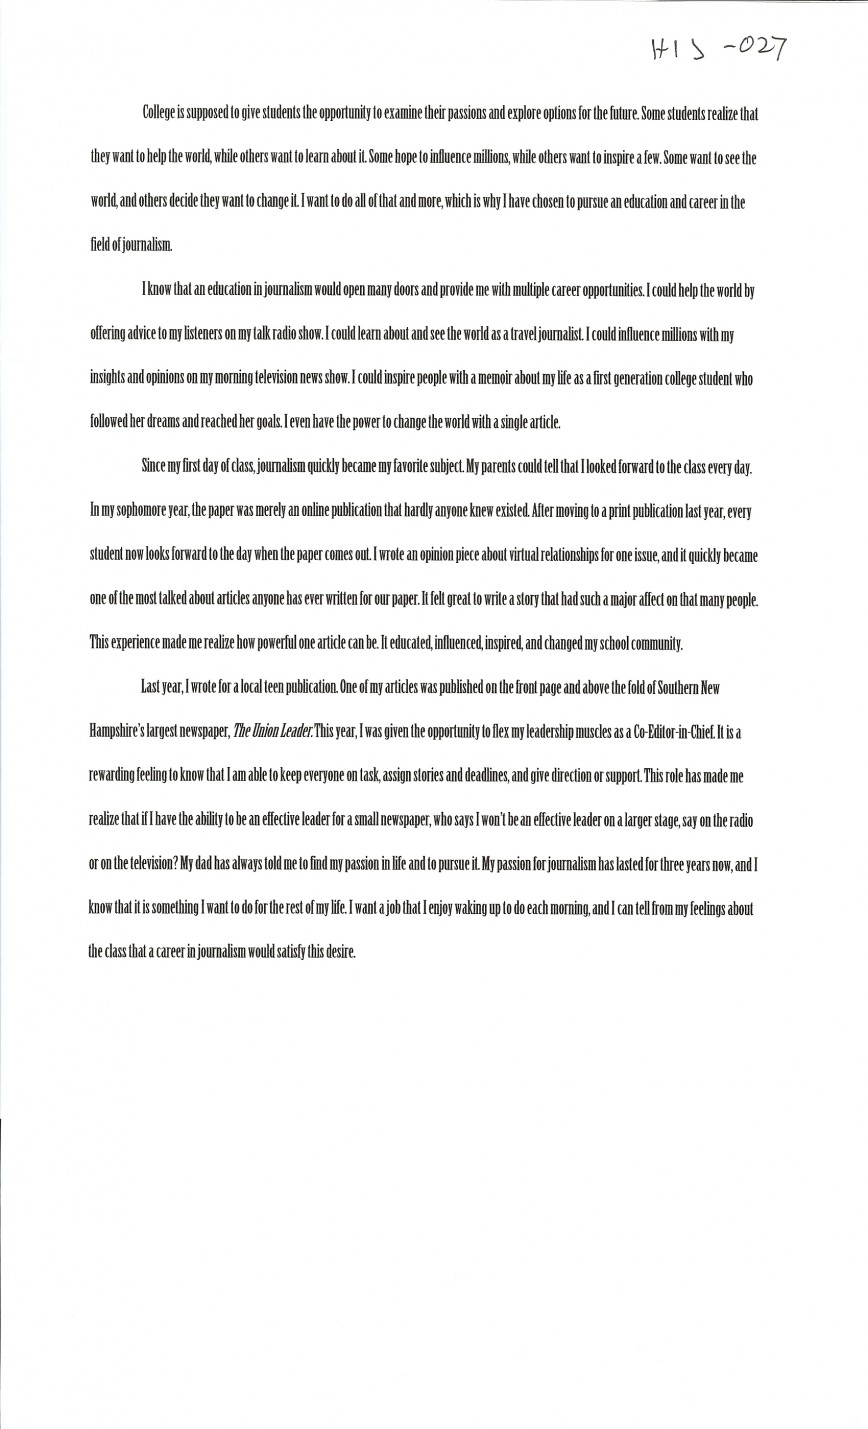 026 Essay Example First Day College Magnificent At Quotations My Pdf 868